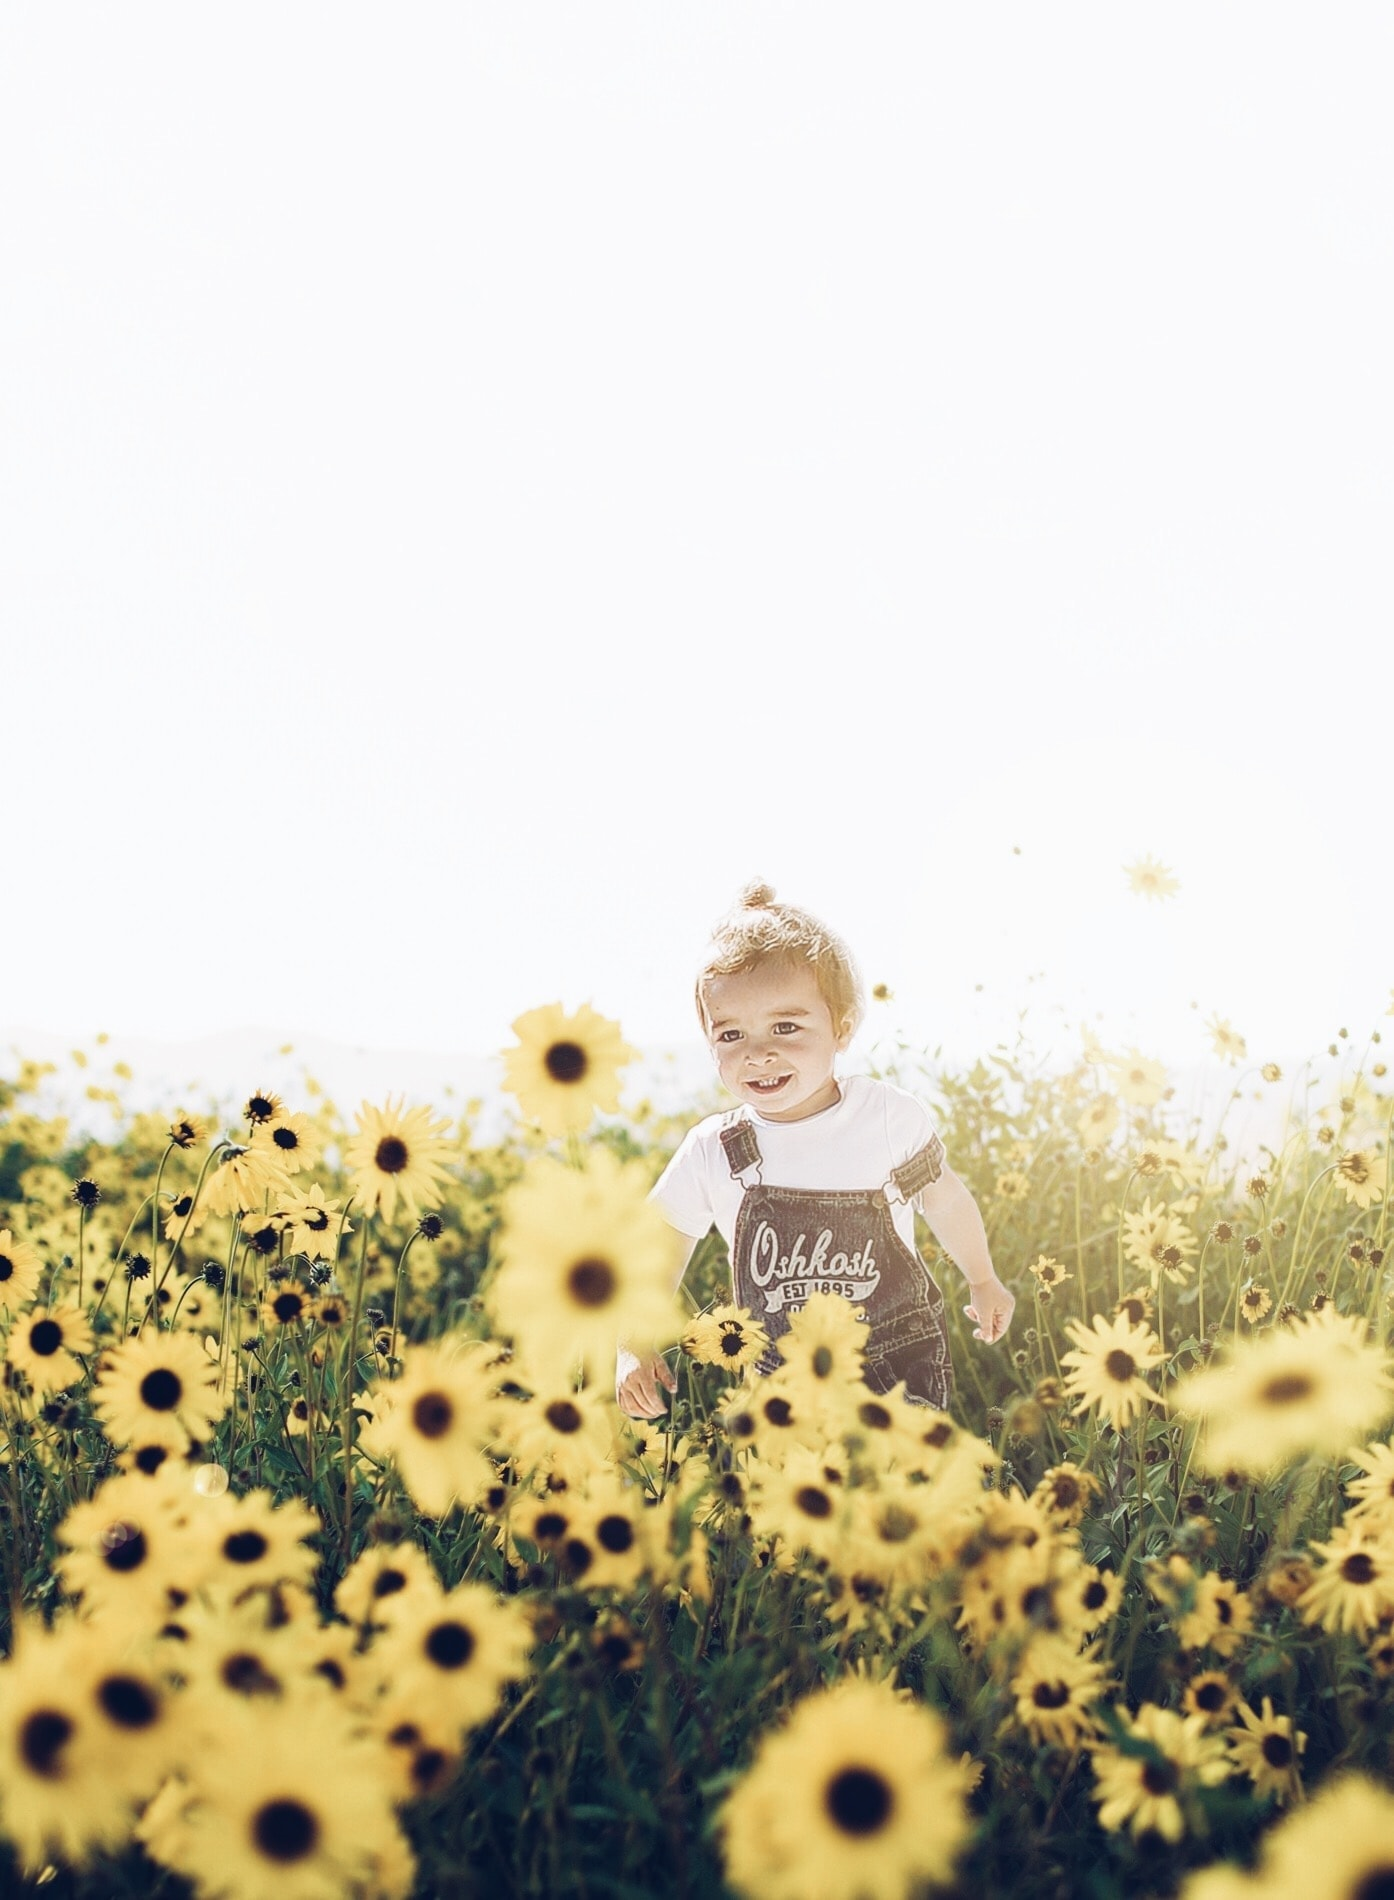 Baby Brody in a field of daisies